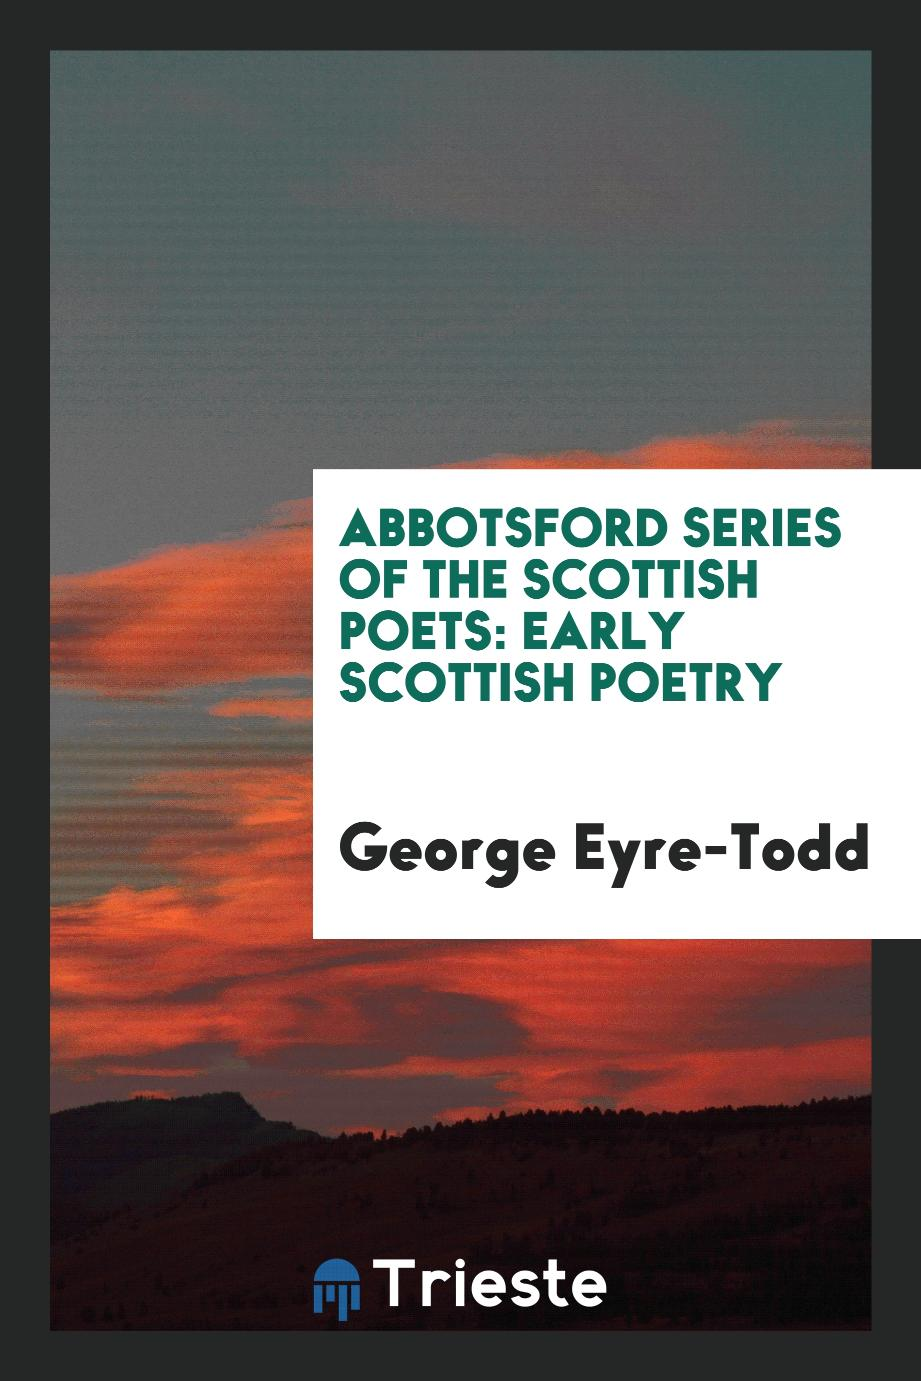 Abbotsford Series of the Scottish Poets: Early Scottish Poetry